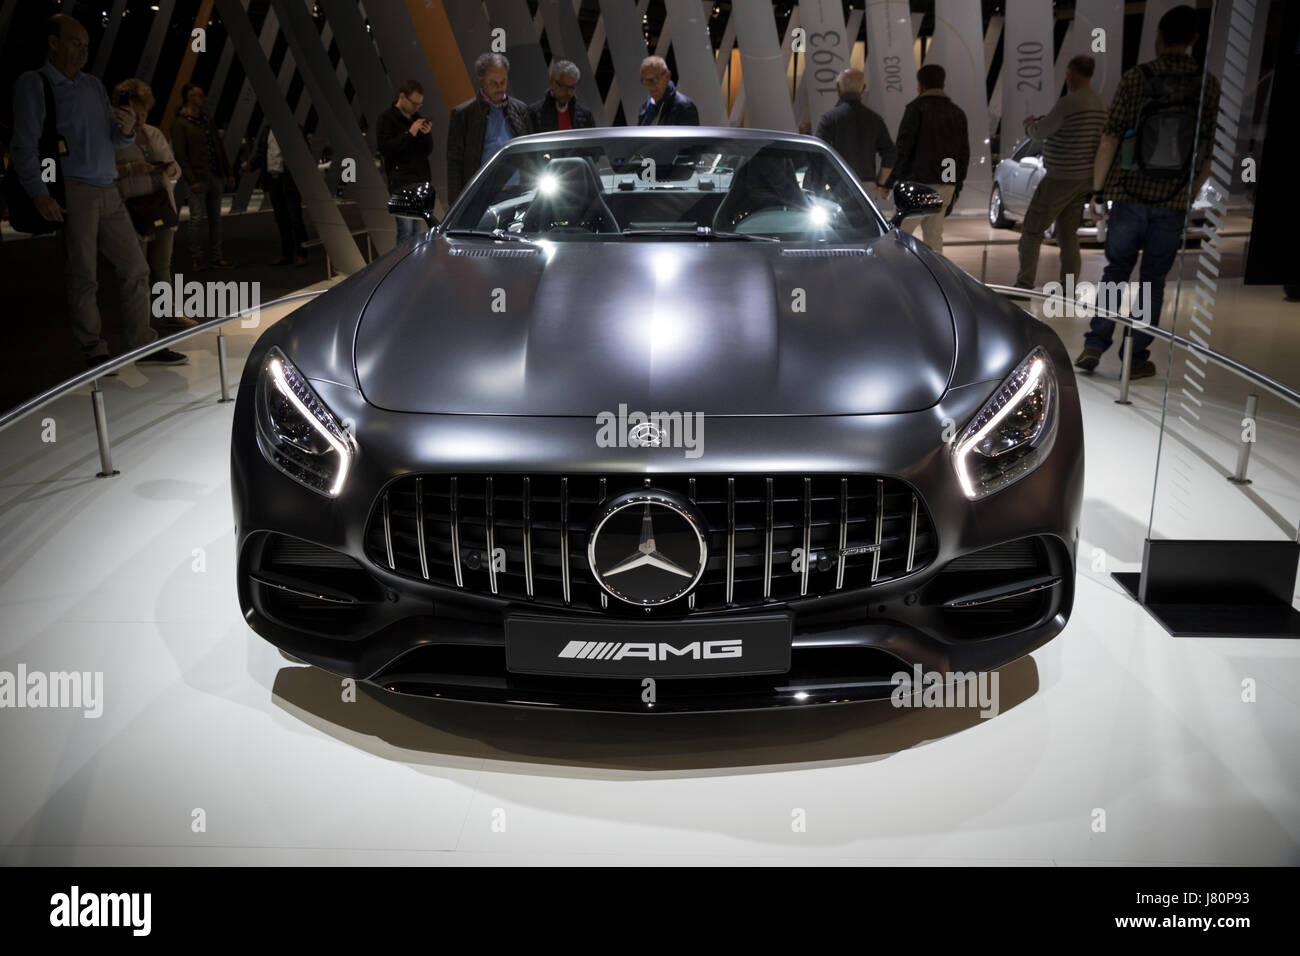 APR 6, 2017: New 2017 Mercedes Benz AMG